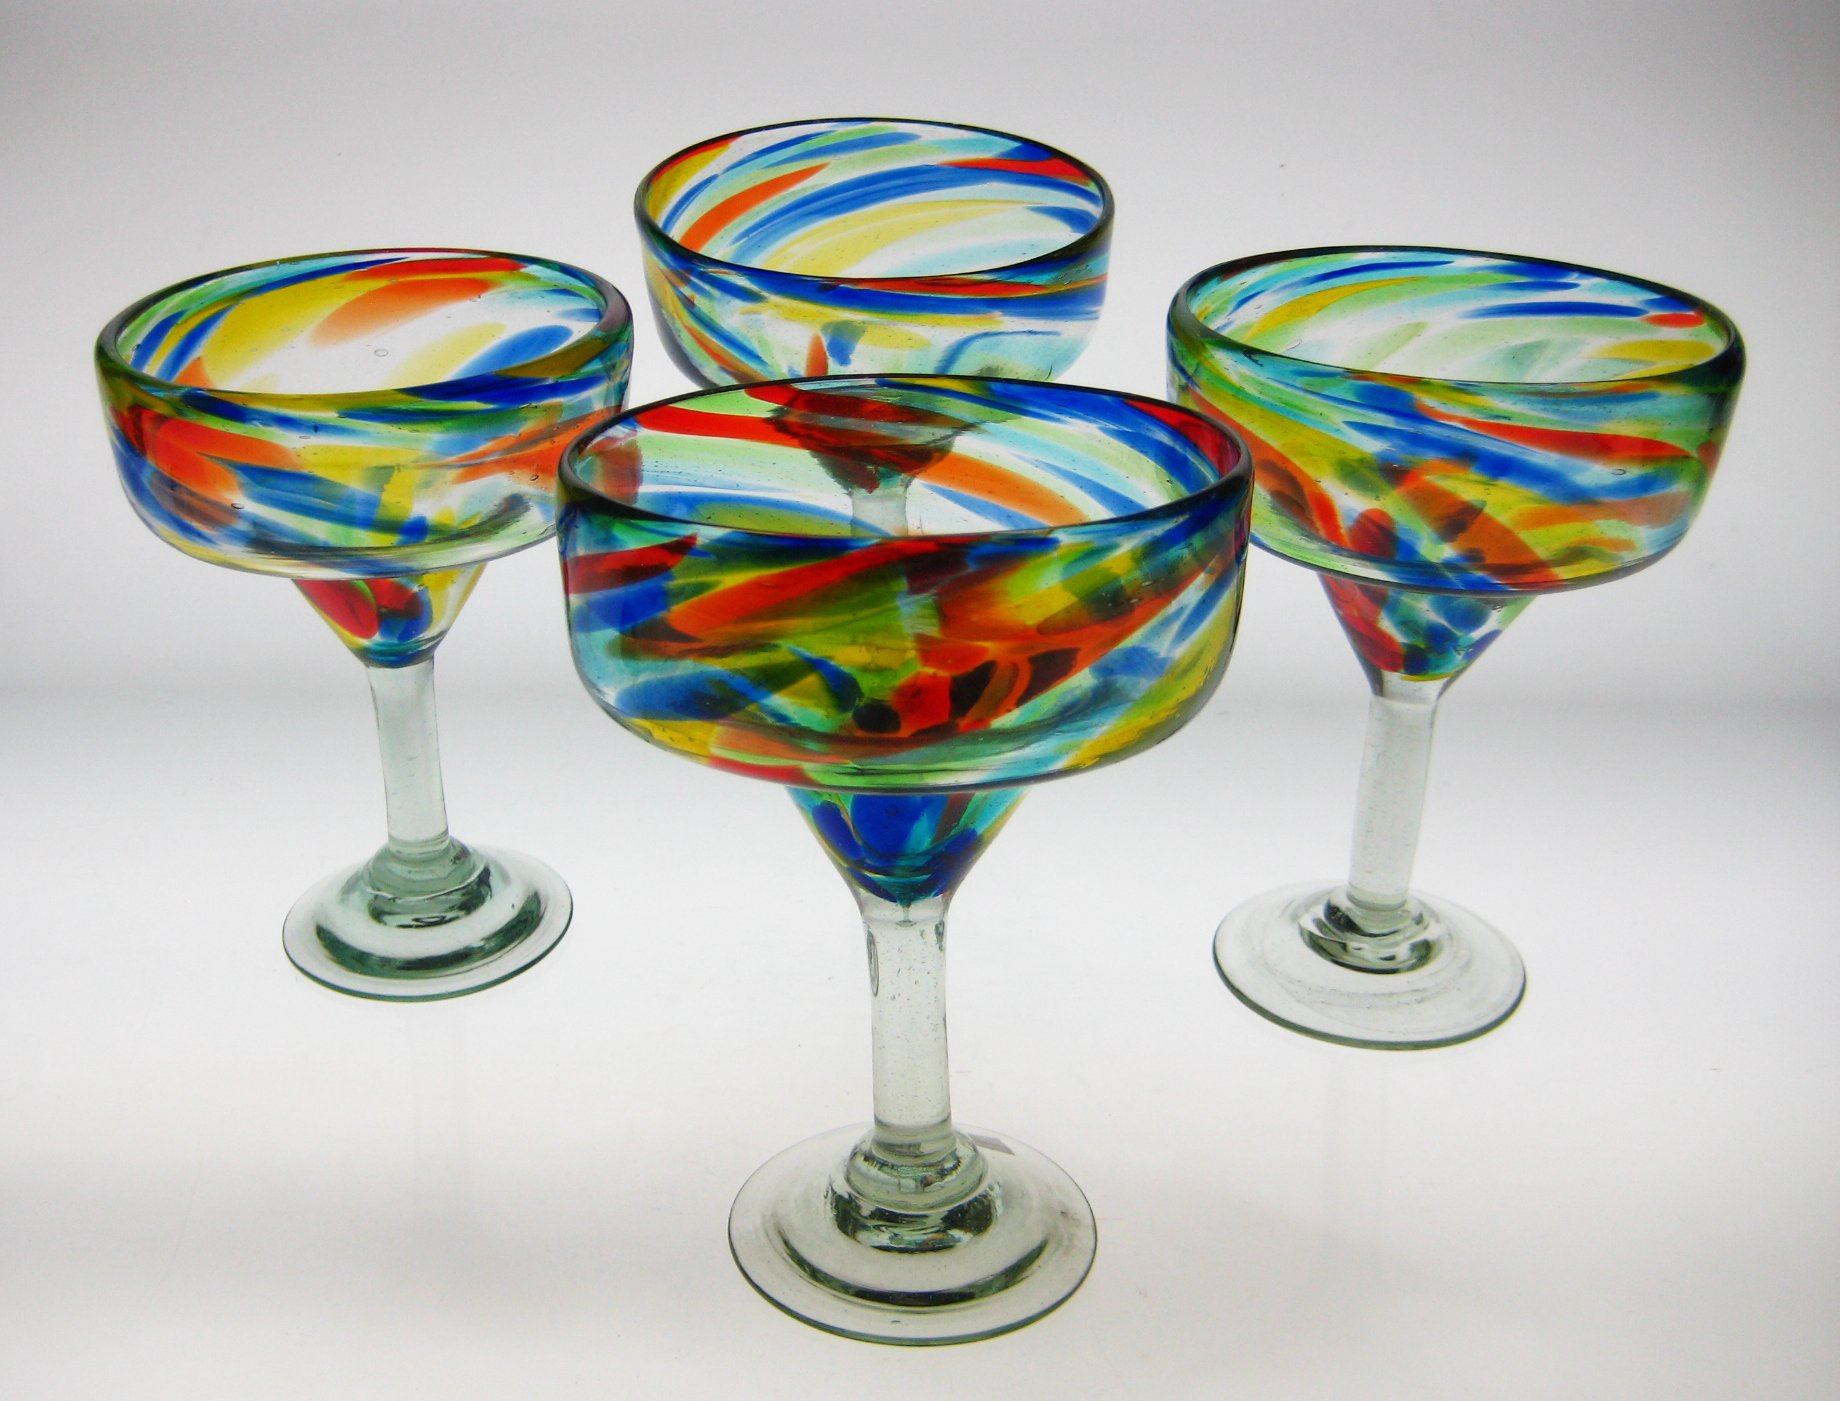 Mexican Glass Margarita Confetti Swirl 4 by Mexican Margarita Glasses